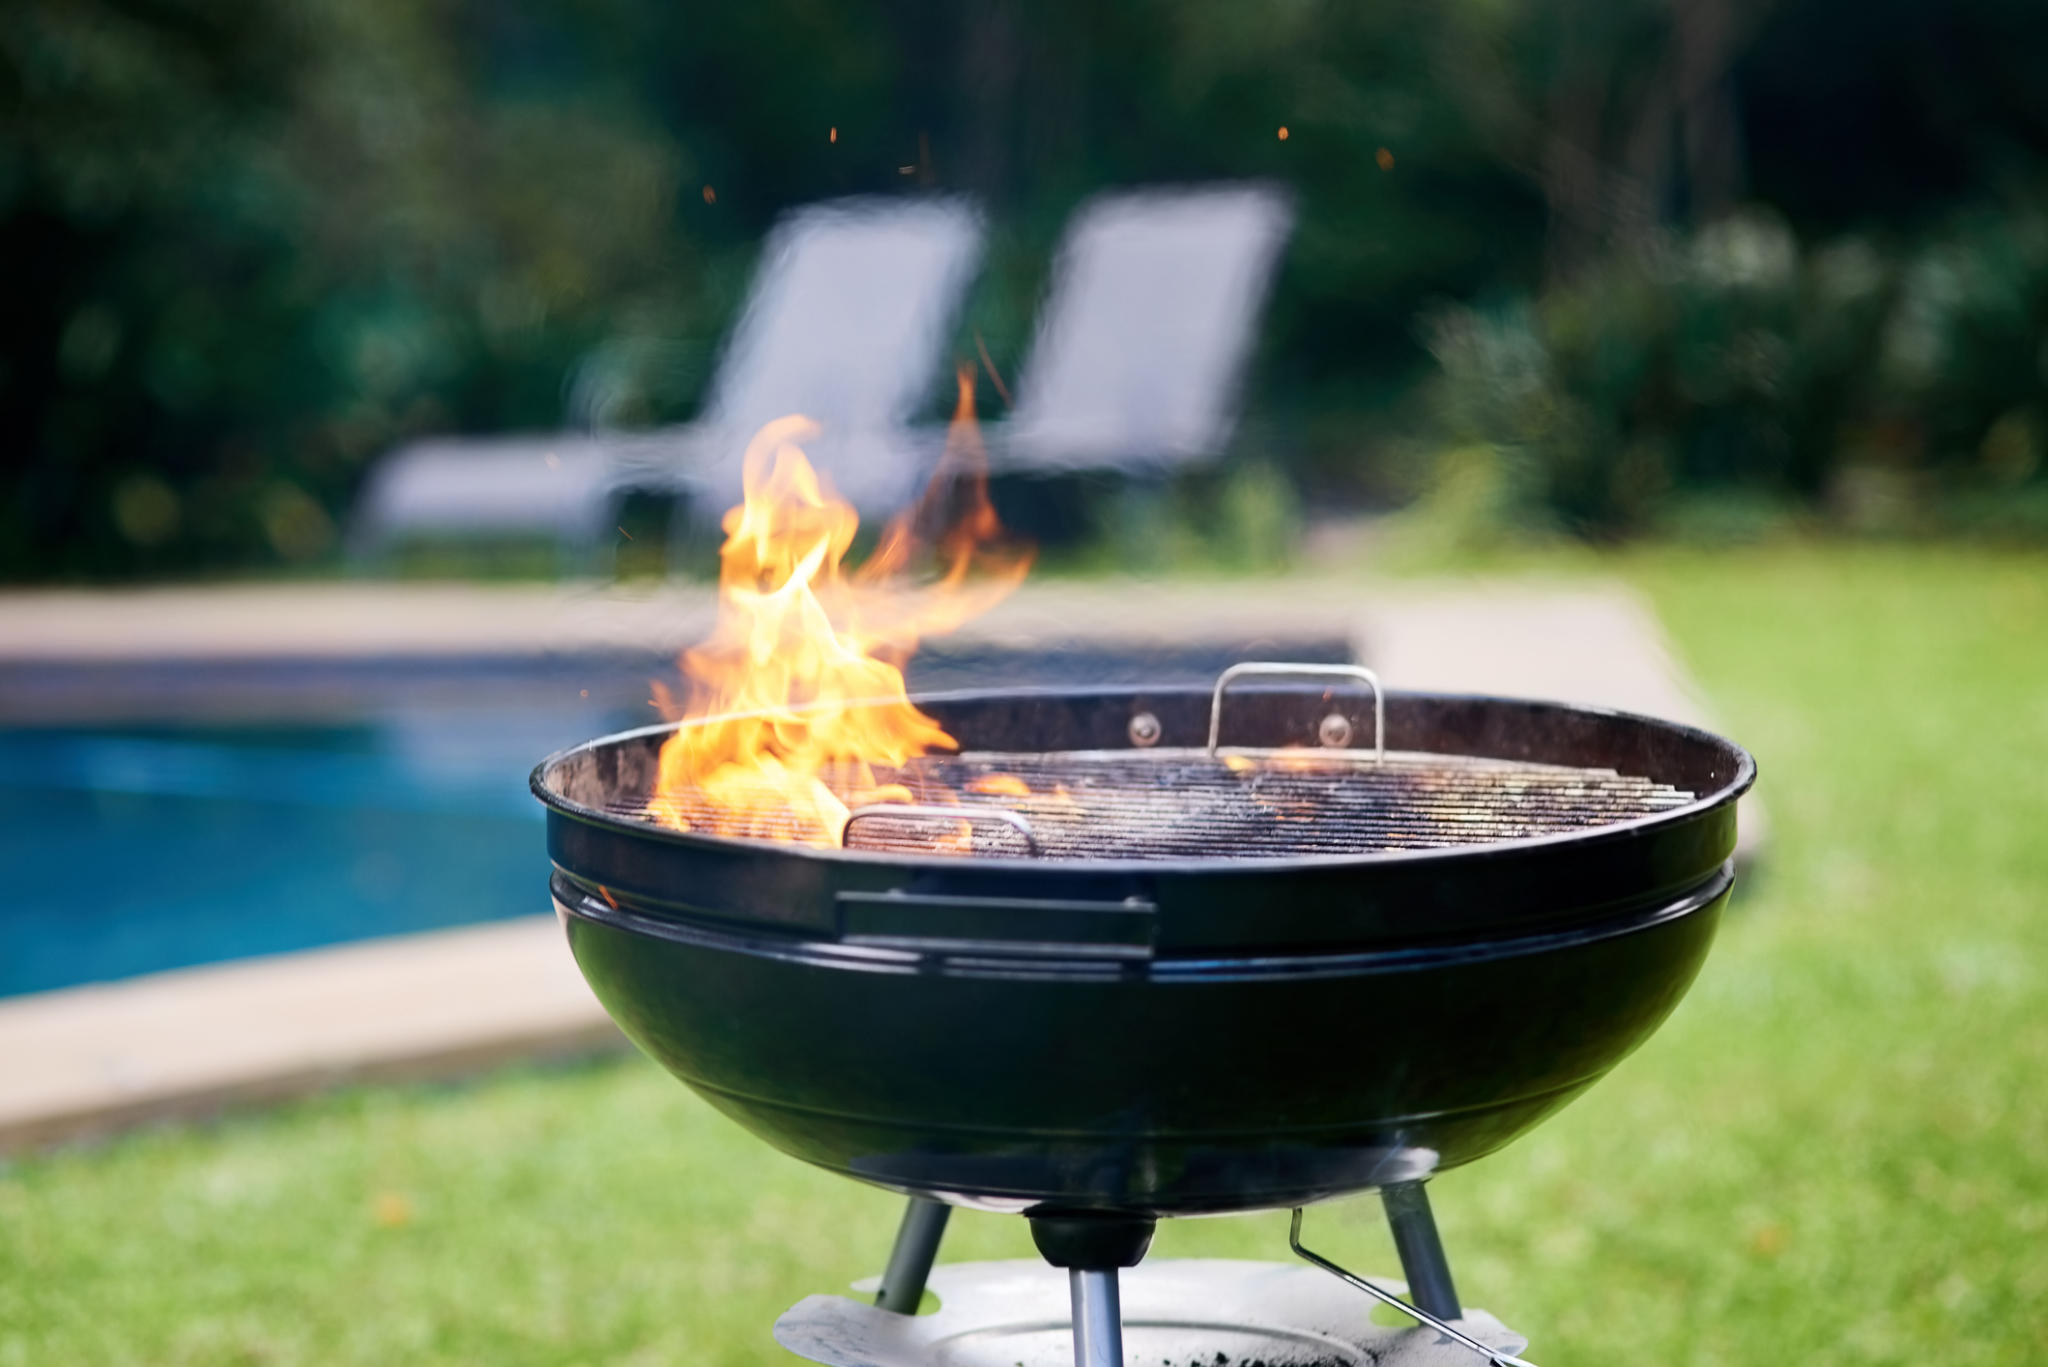 Cooking Healthy Meals on the Grill: 3 Great Recipes